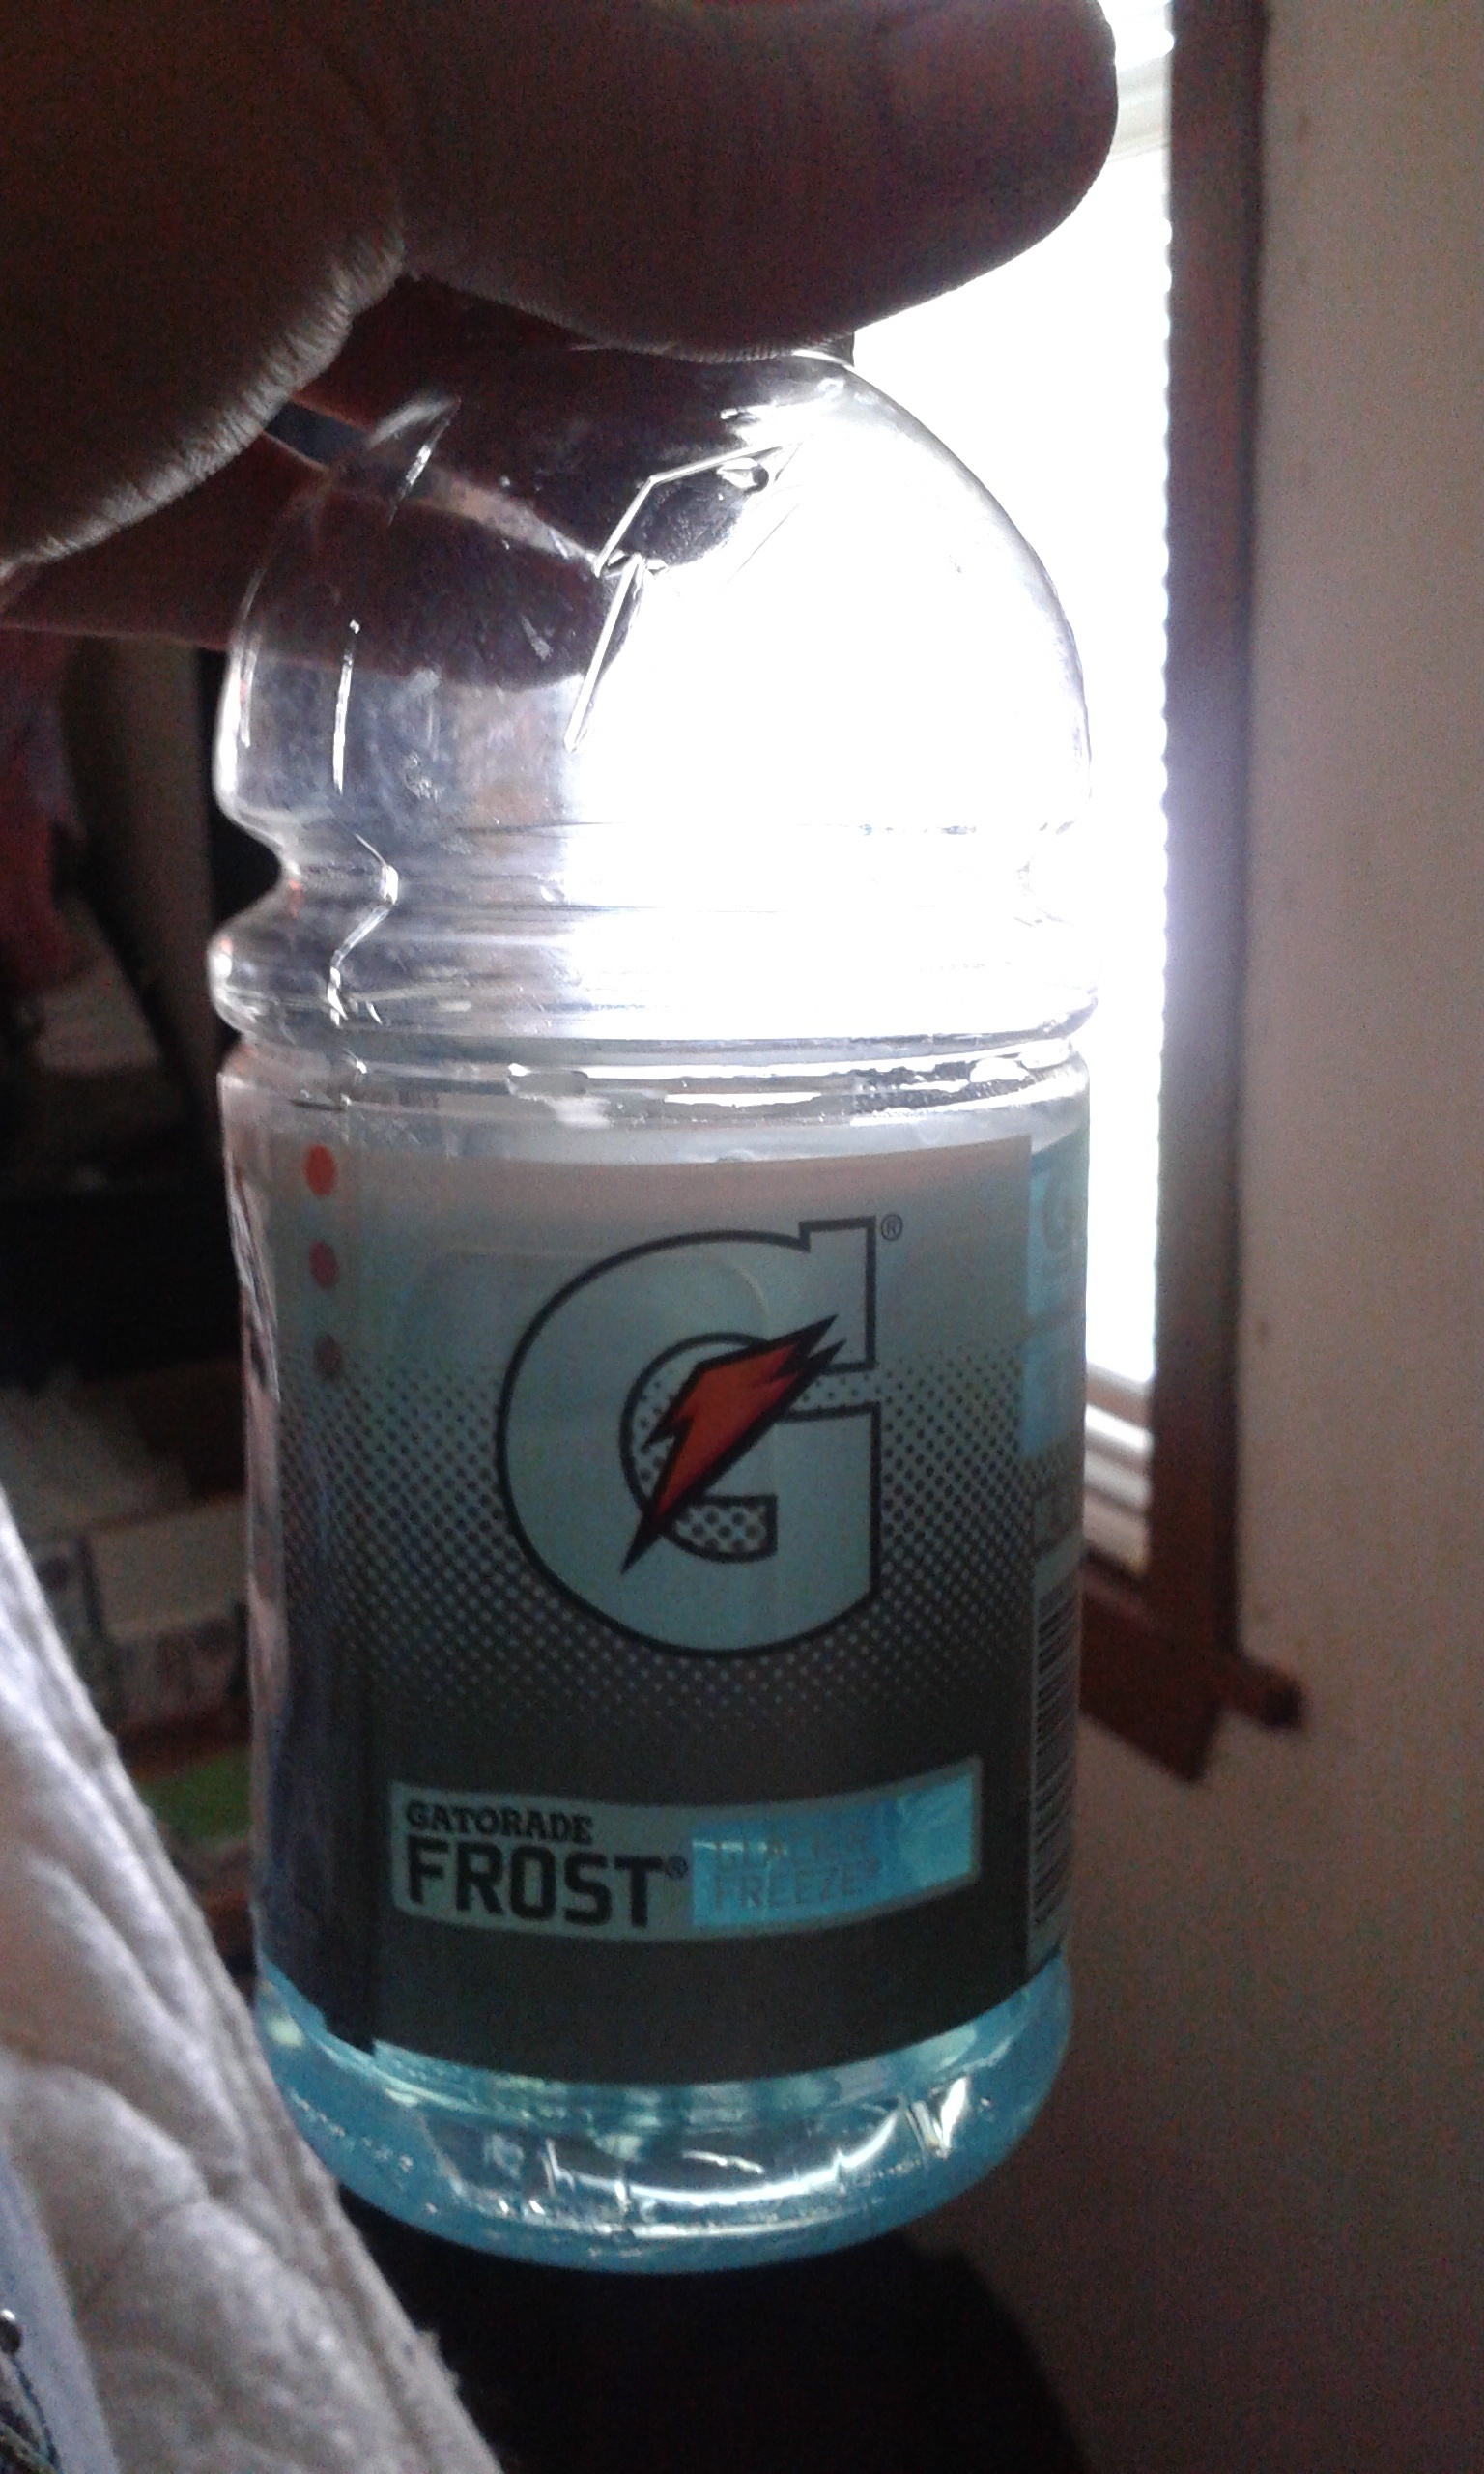 Gatorade thirst quencher frost glacier freeze - Product - en